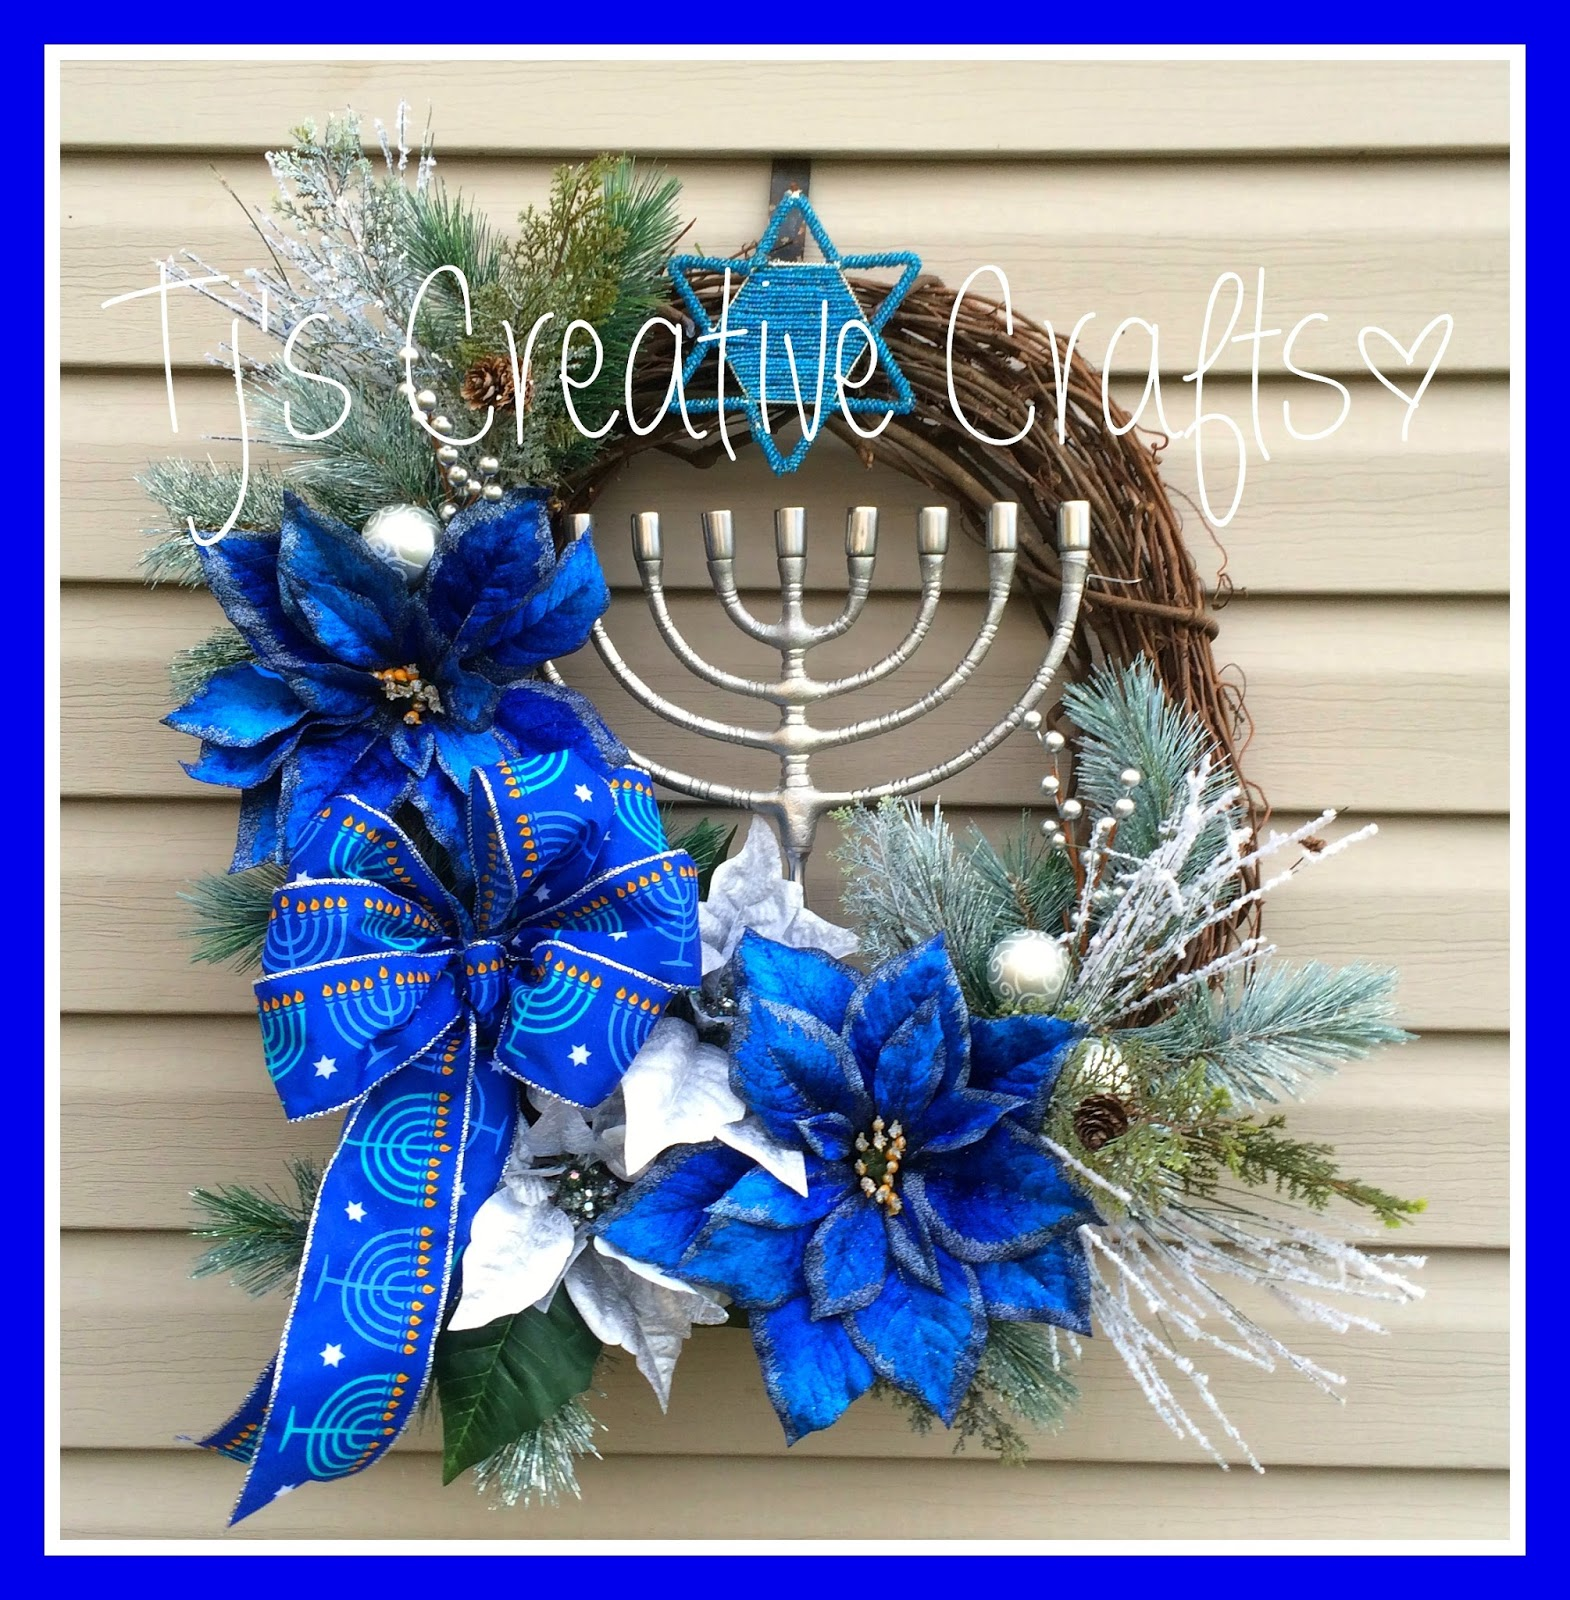 A Day In The Life with Tj: Hanukkah Wreaths